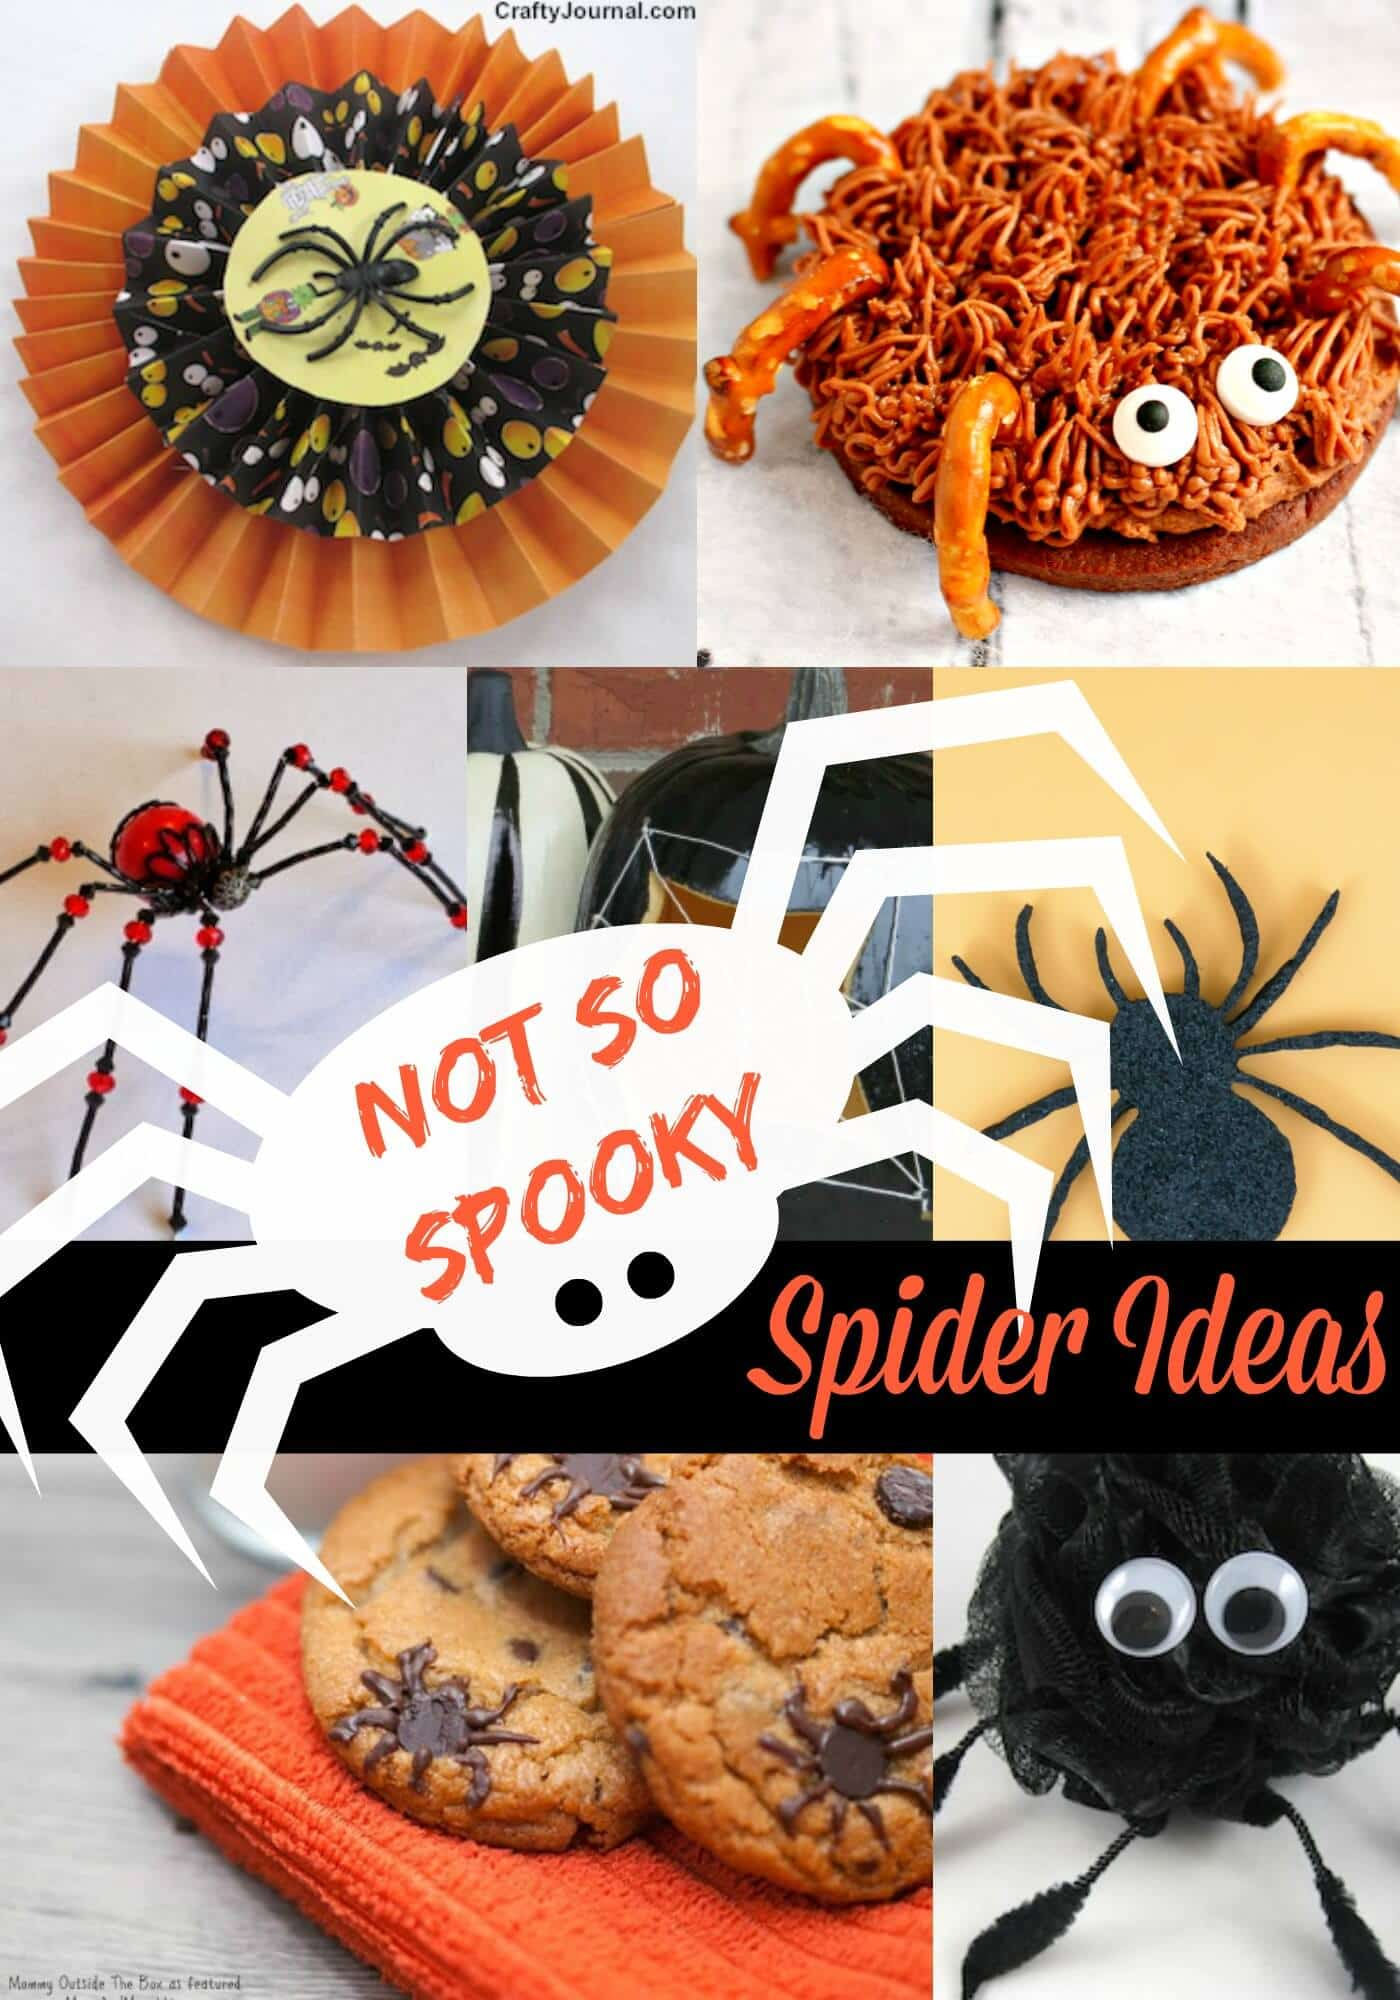 Not so Spooky Spider Ideas for Halloween